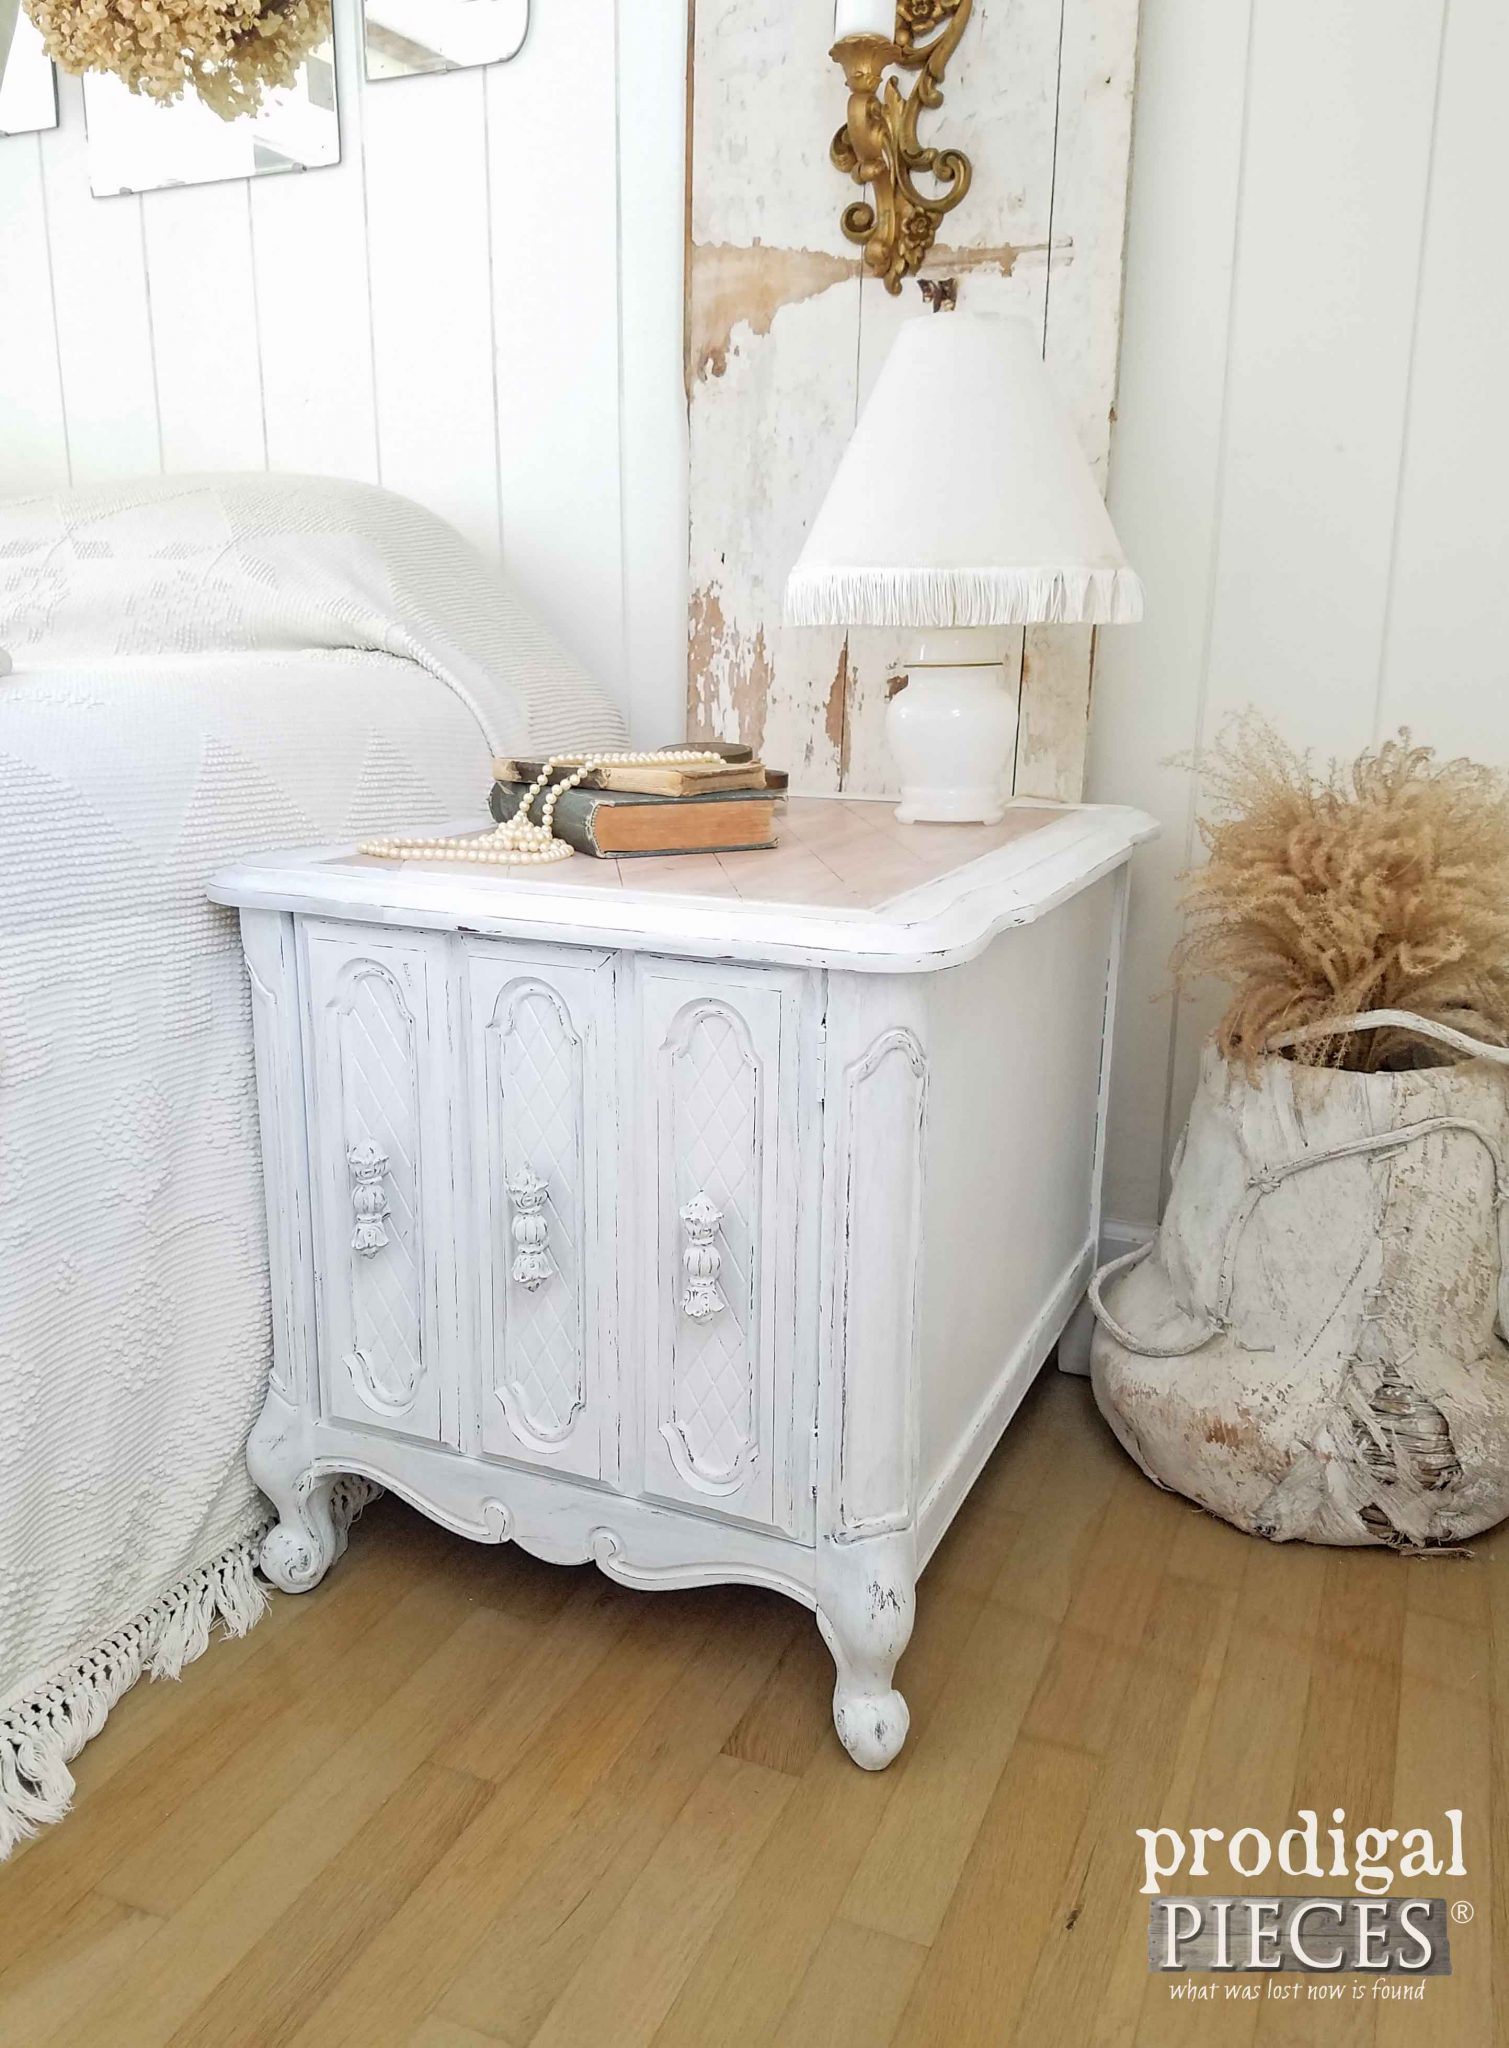 Farmhouse Chic Nightstand Makeover by Prodigal Pieces | prodigalpieces.com